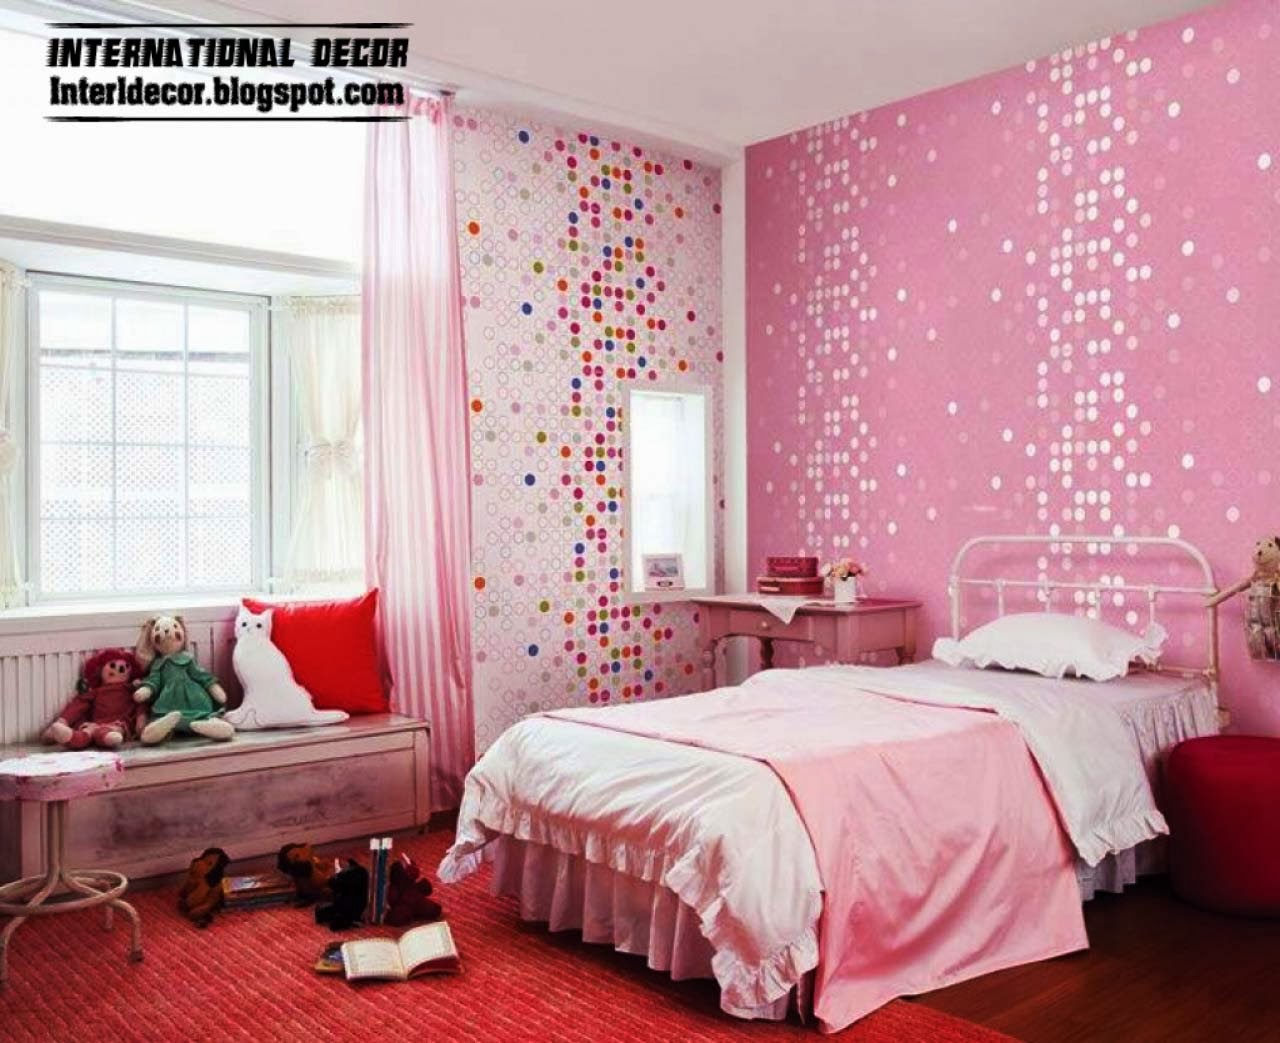 Interior design 2014 15 pink girl 39 s bedroom 2014 for Girls bedroom decor ideas